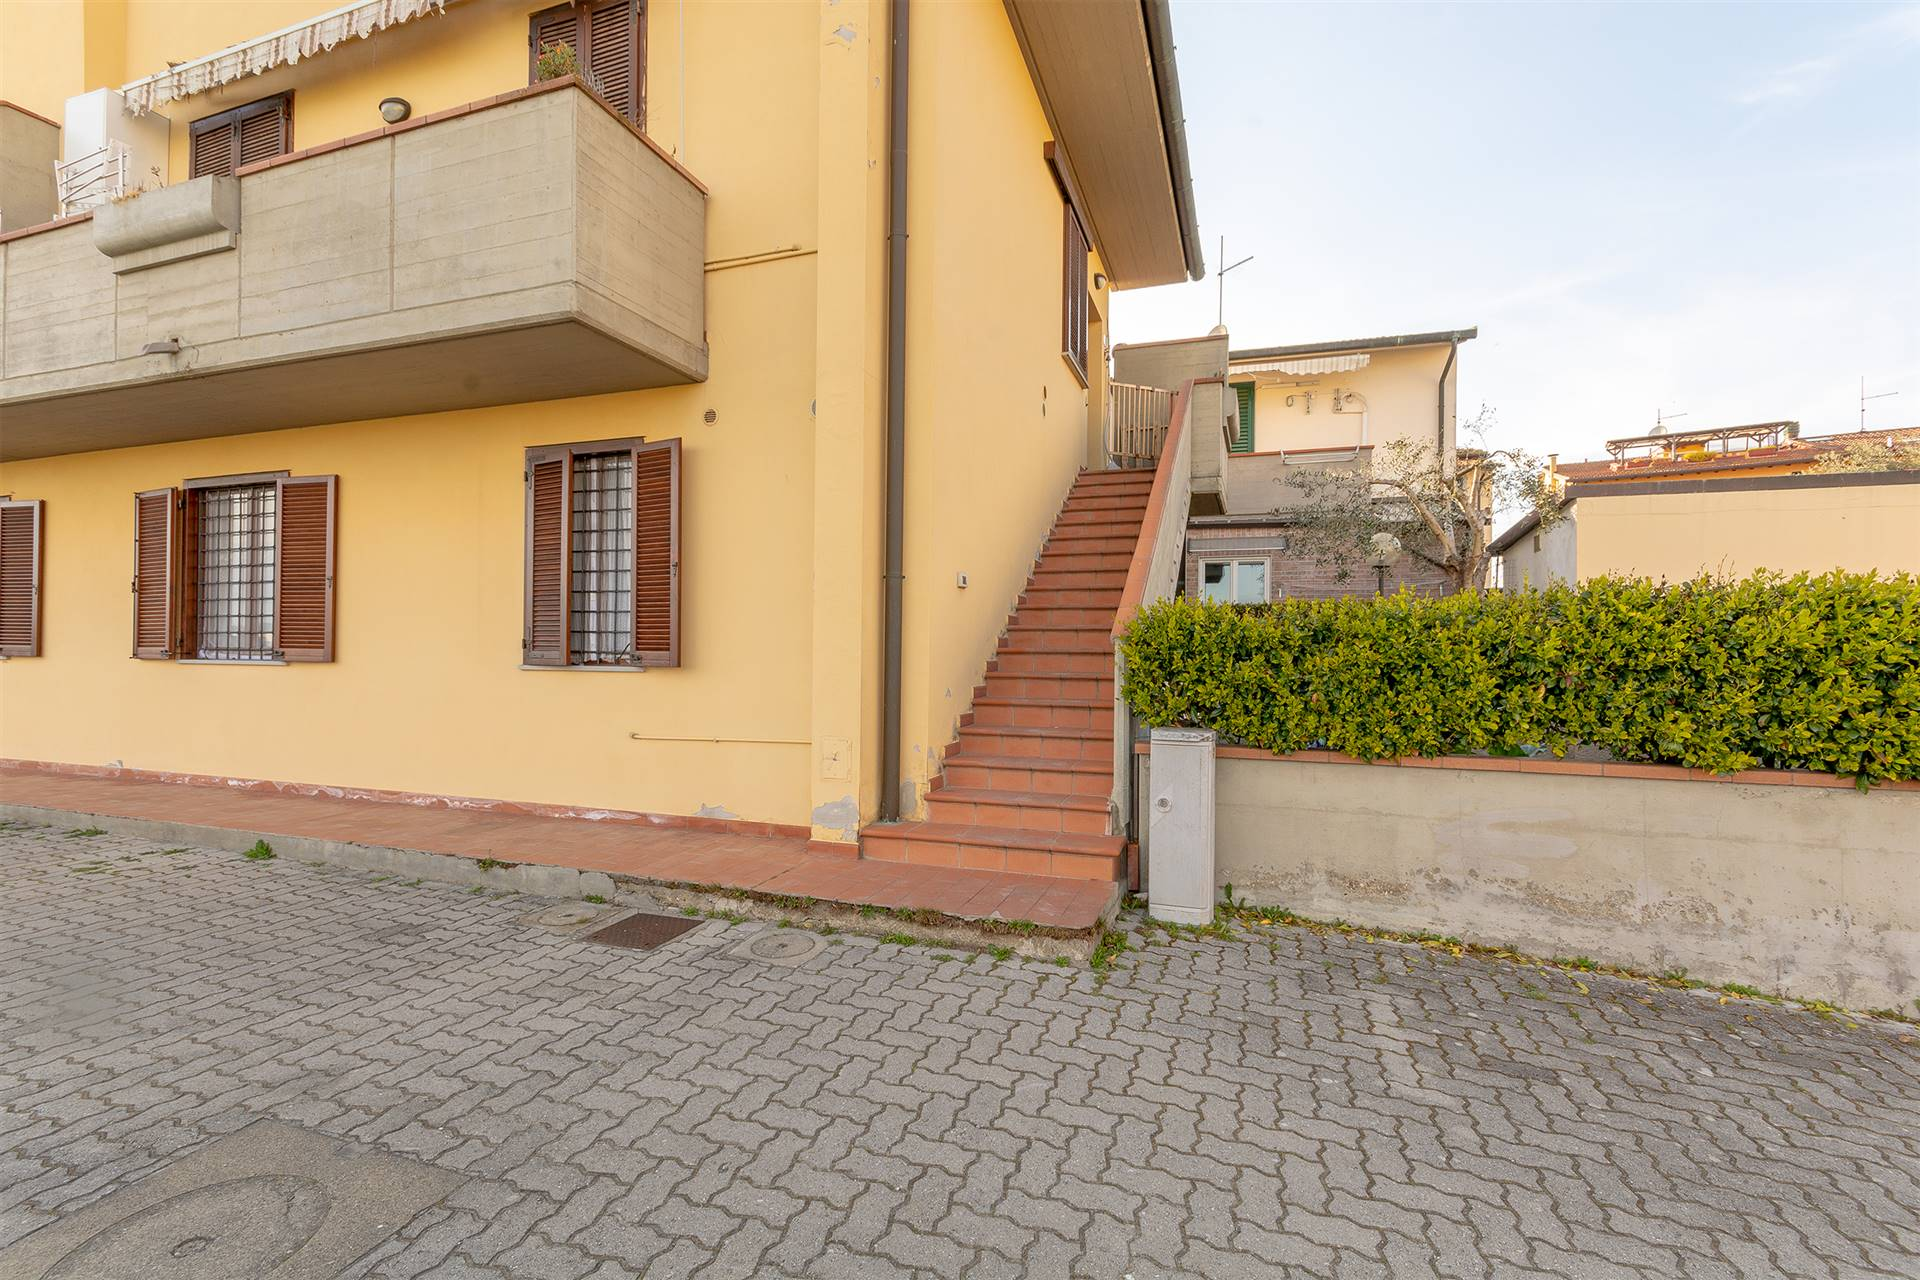 COLLI ALTI, SIGNA, Apartment for sale of 60 Sq. mt., Good condition, Heating Individual heating system, Energetic class: G, Epi: 169,931 kwh/m2 year,